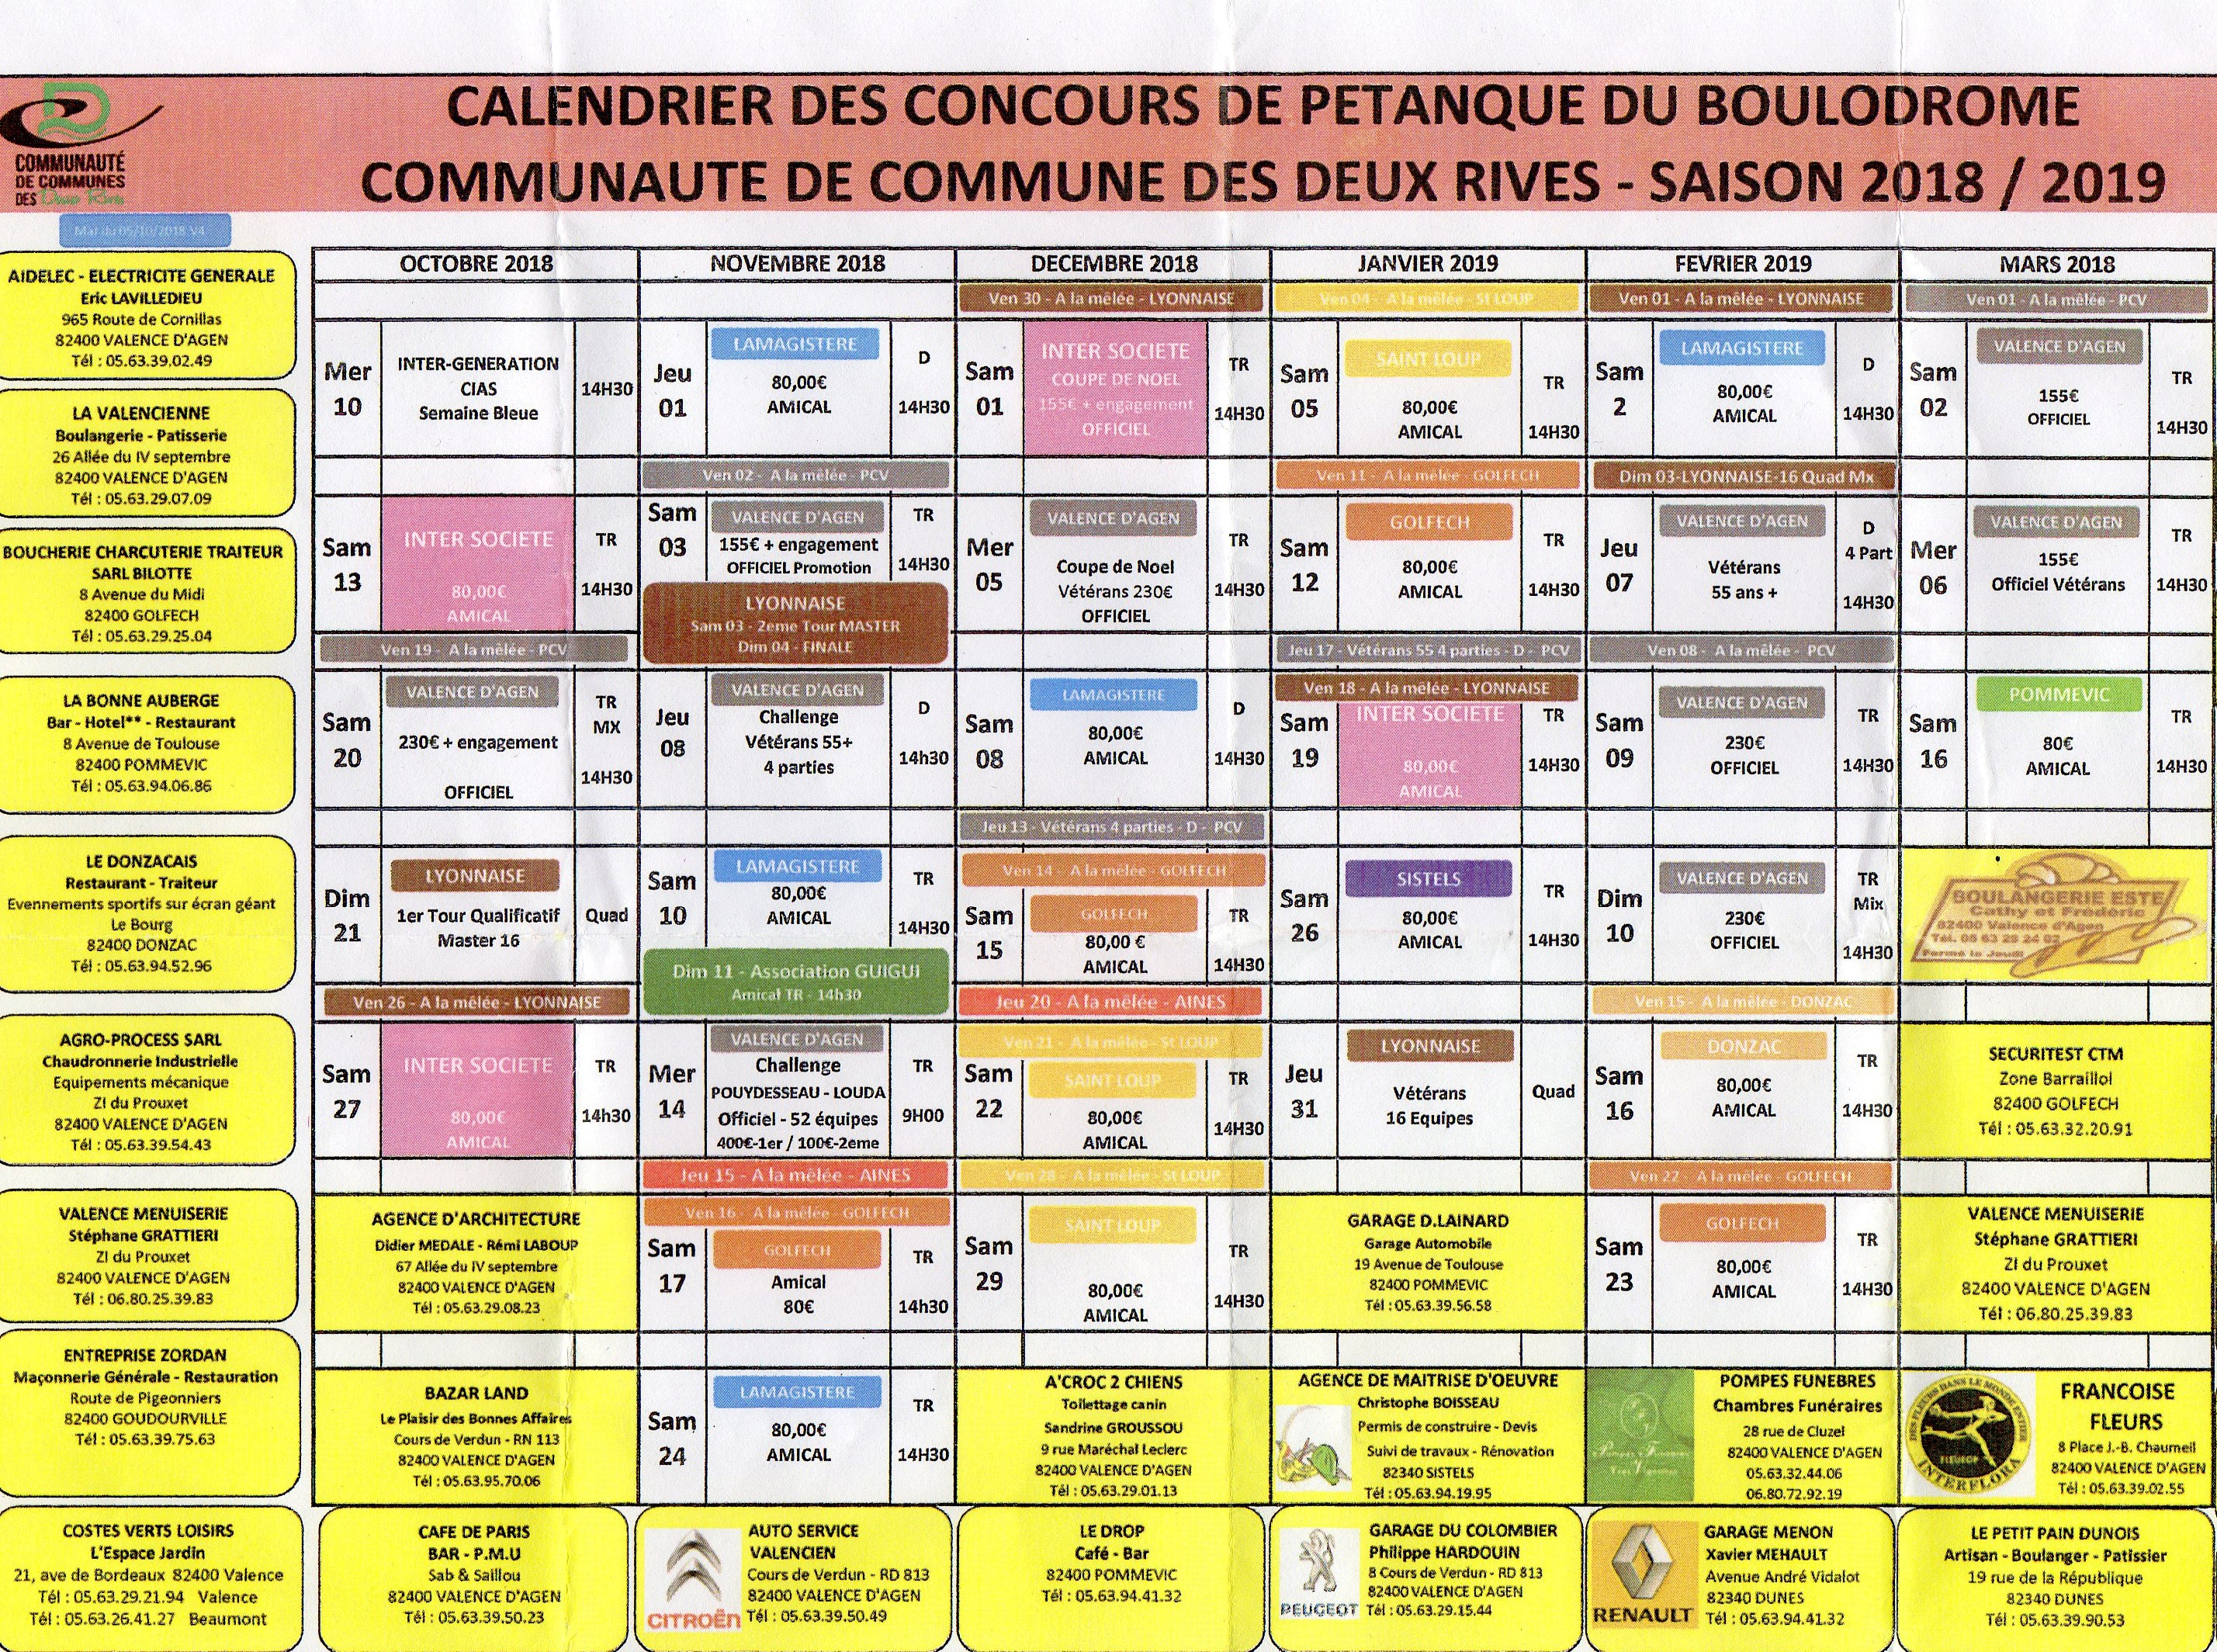 Calendriers hiver Valence d'Agen 2018/2019.